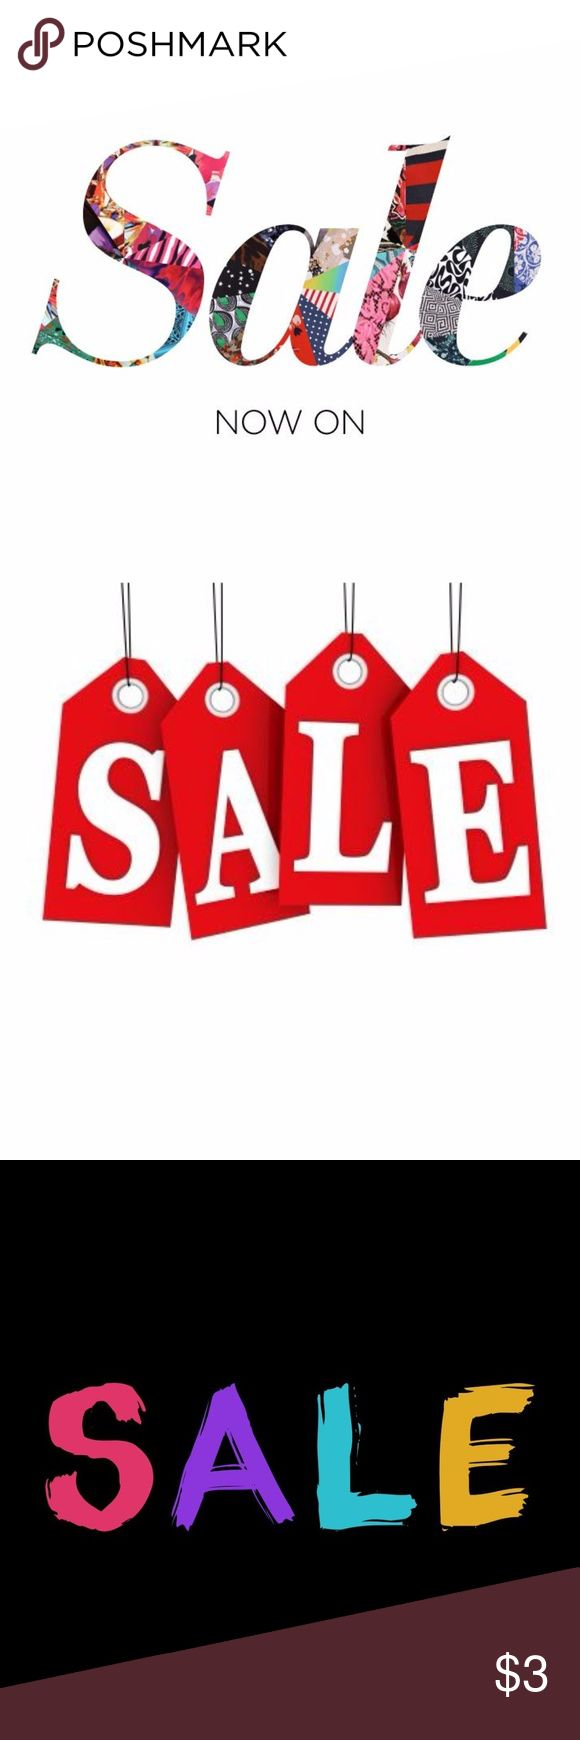 CURRENT SALES IN MY CLOSET -> -> The latest sales going on in my closet:  1. BOGO (buy 1 get 1 free) all kid's clothing, shoes & accessories (up to 3 free)  2. BOGO men's polo shirts (buy 1 get 1 for $1)  3. Purchase 3+ items & receive 10% off your total purchase  4. Bundle your likes for a private discount (no minimum)  If you have any questions, please feel free to comment below.   Thanks for shopping my closet @cjrose25!! Various Shoes